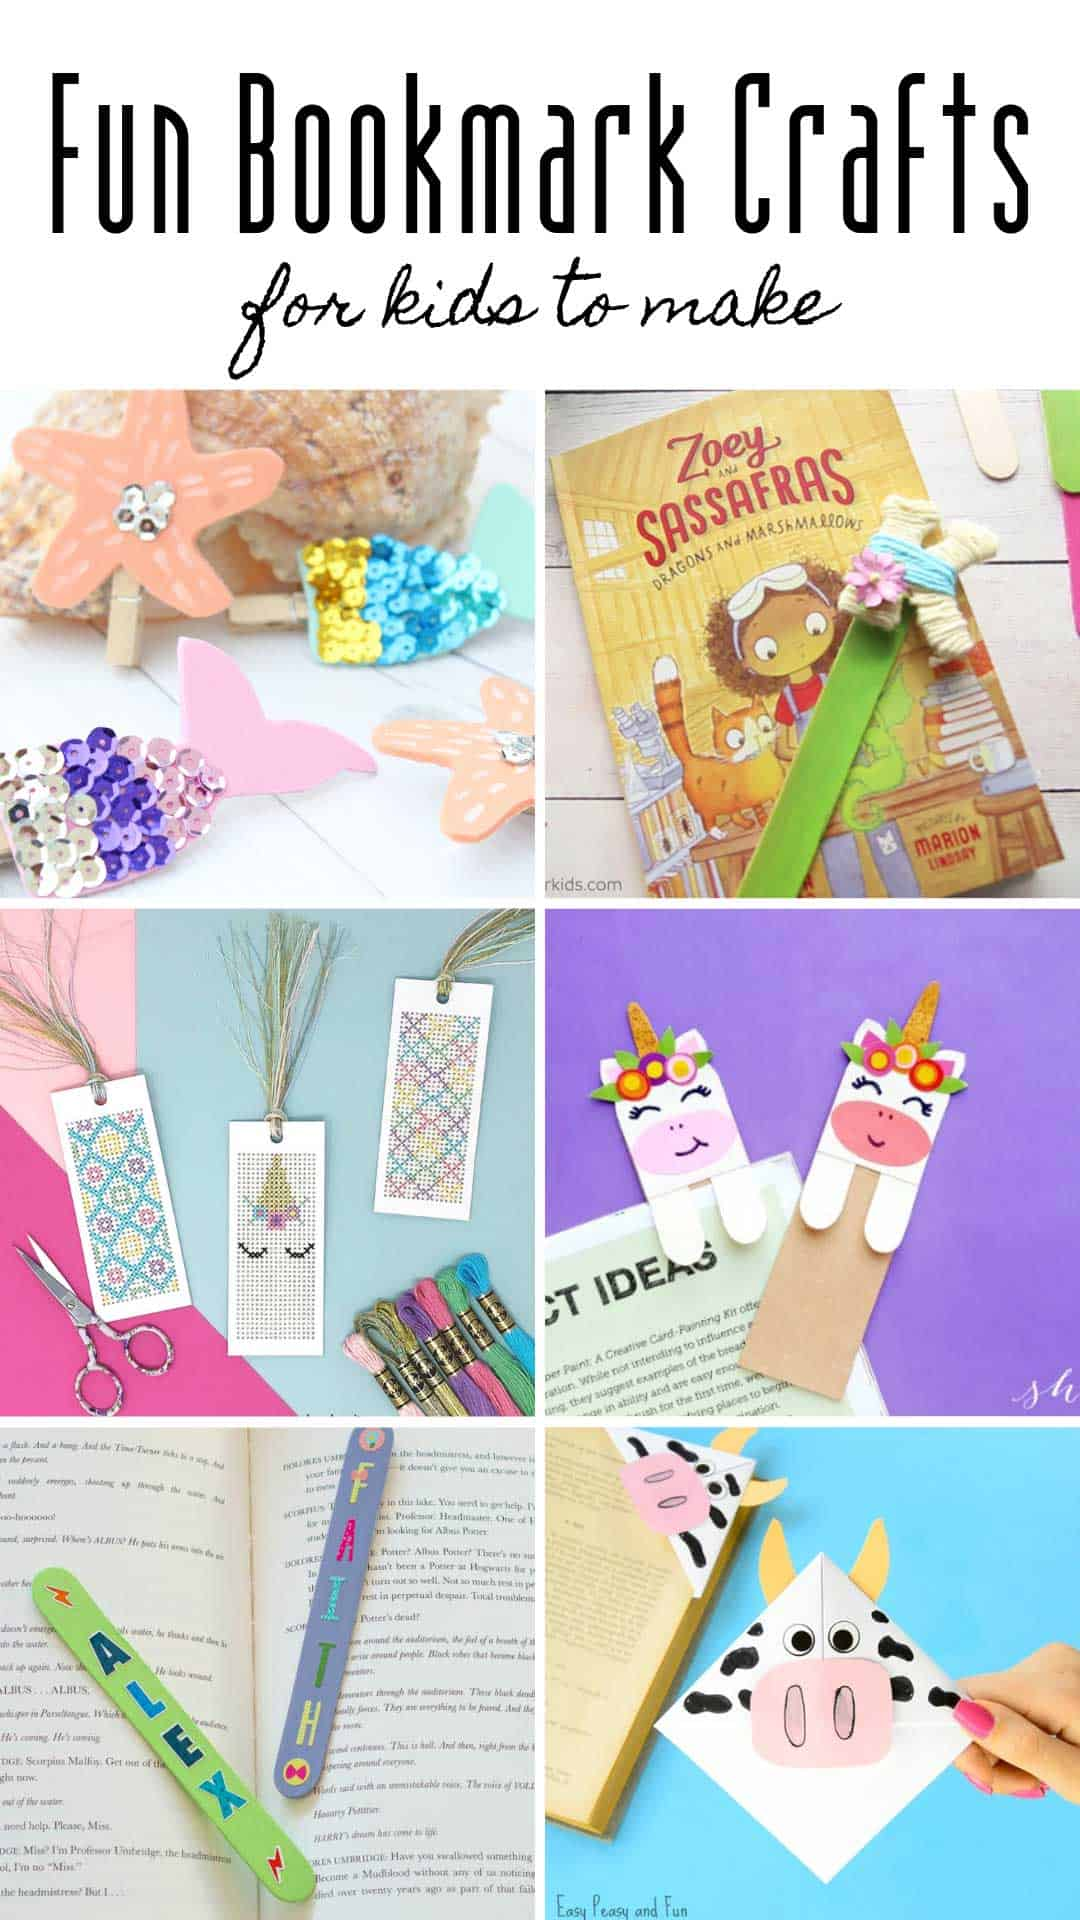 Want to show your kids how to make a bookmark this summer? Check out these fun bookmarks for kids to make. I love all the unicorn craft options!